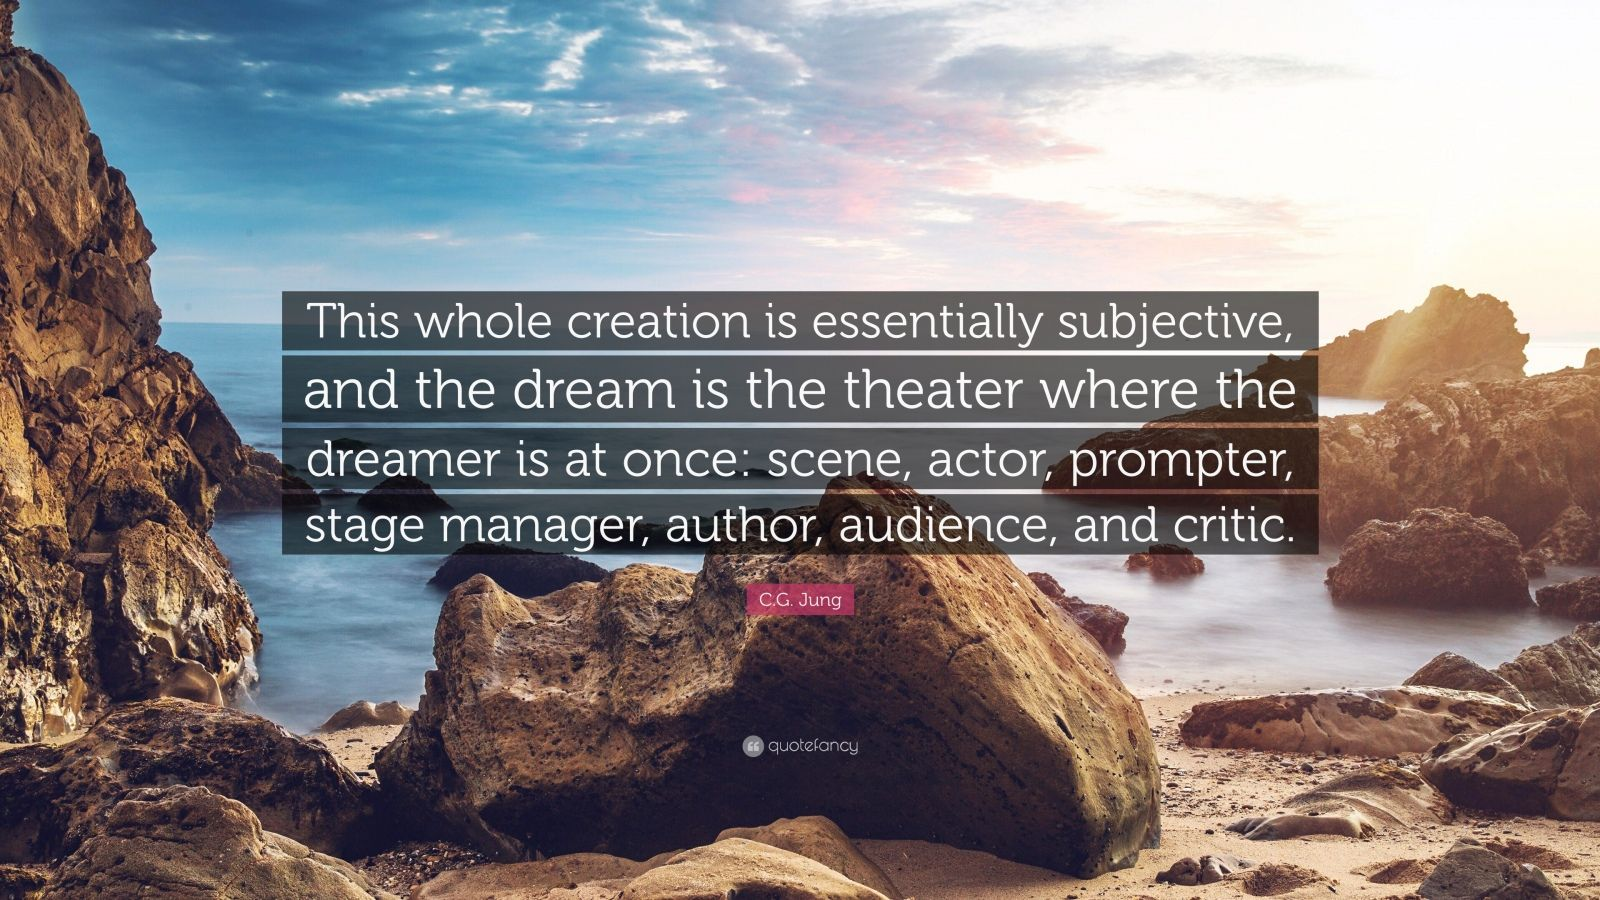 """C.G. Jung Quote: """"This whole creation is essentially subjective, and the dream is the theater where the dreamer is at once: scene, actor, prompter, stage manager, author, audience, and critic."""""""